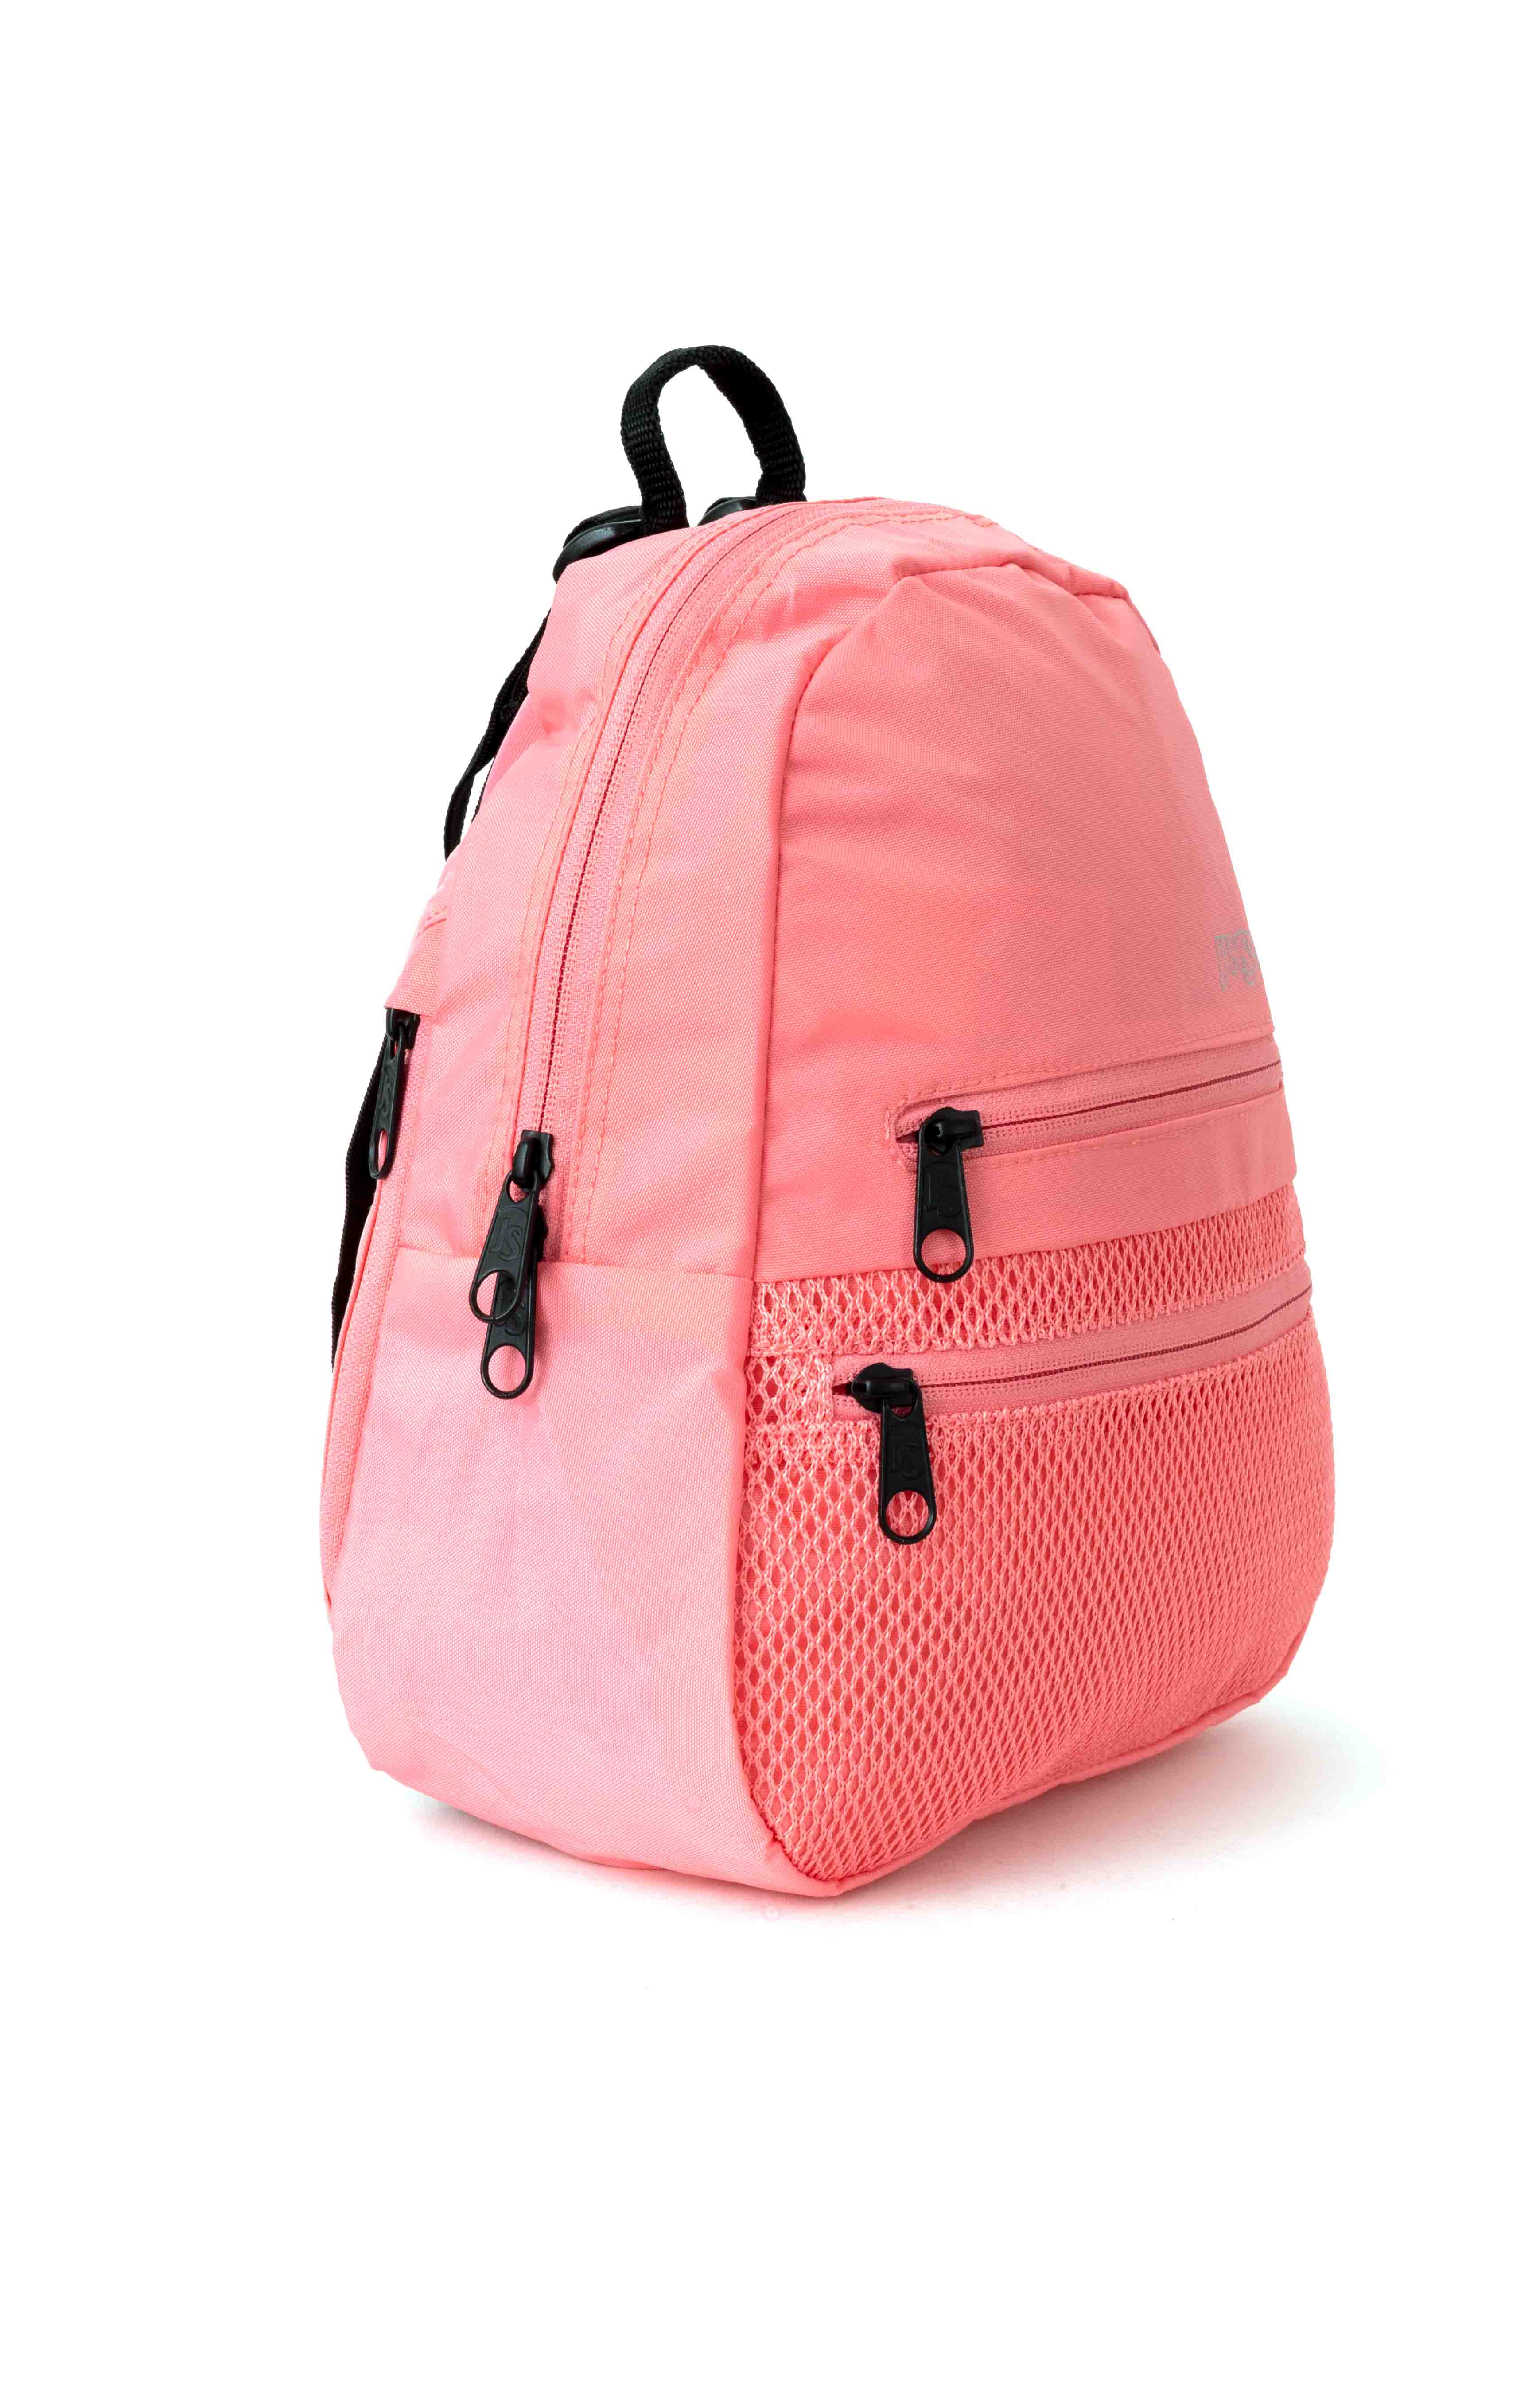 Half Pint TR Backpack - Strawberry Pink  2